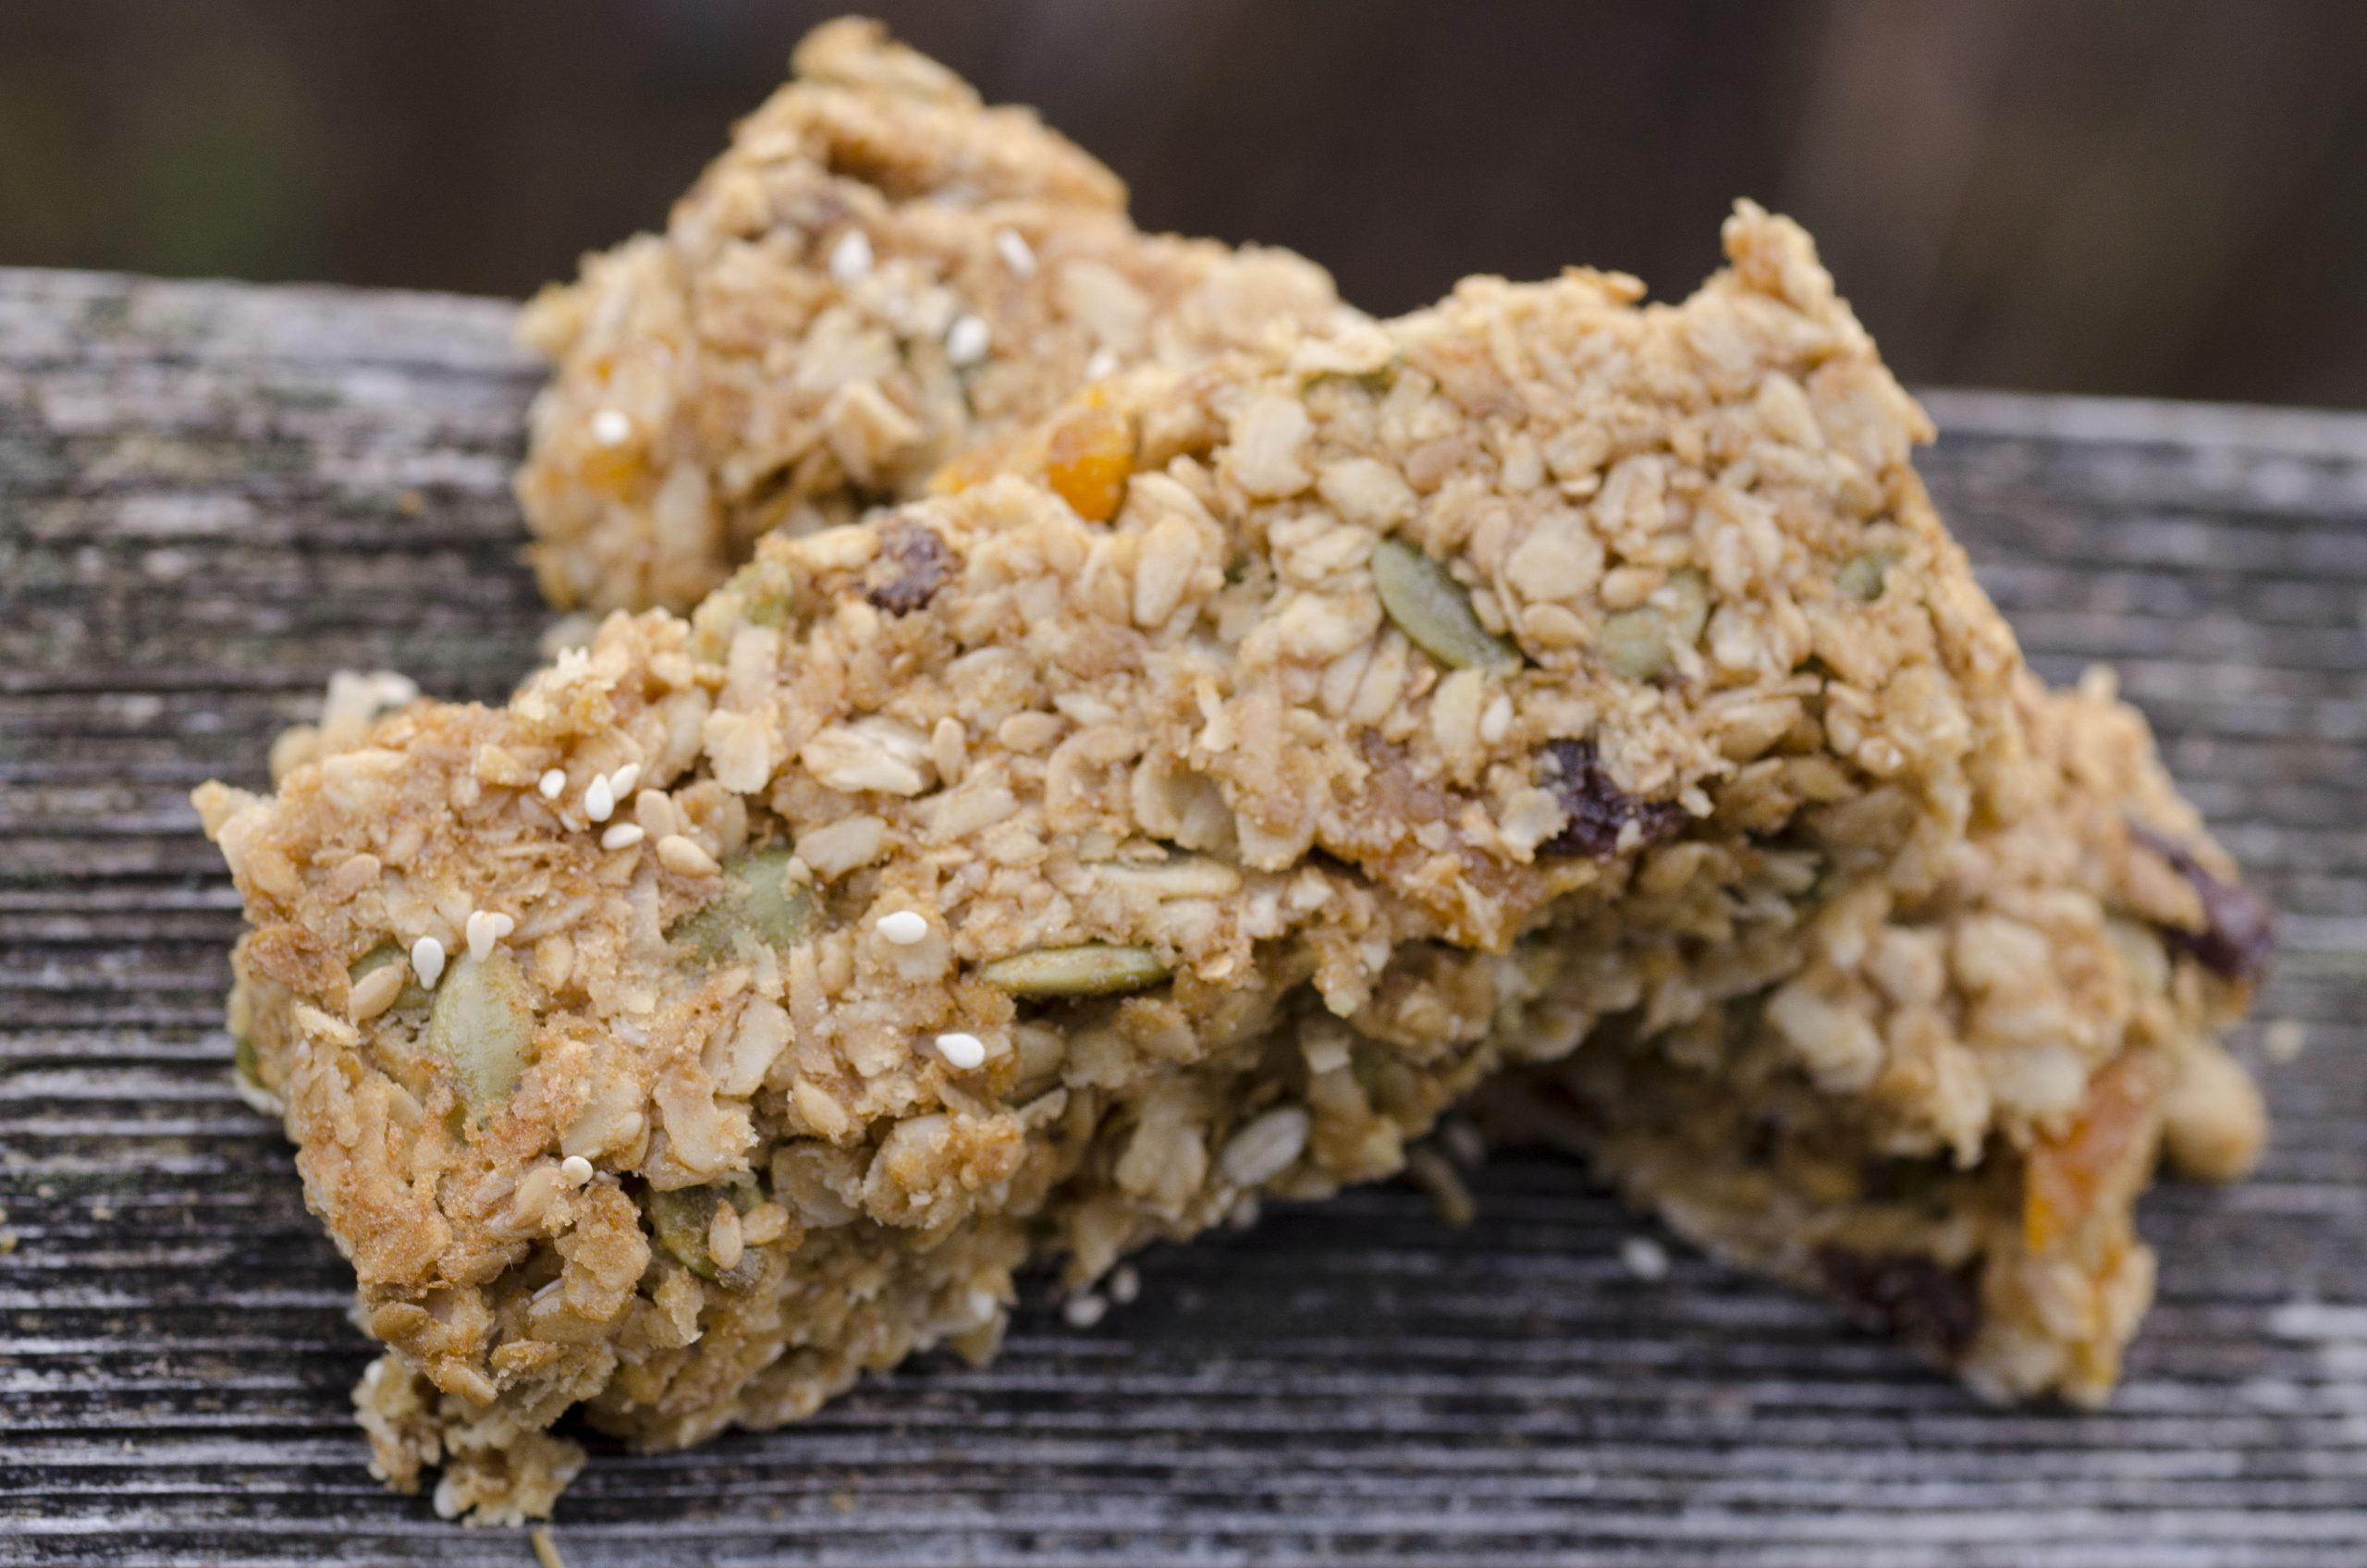 SPL granola bar